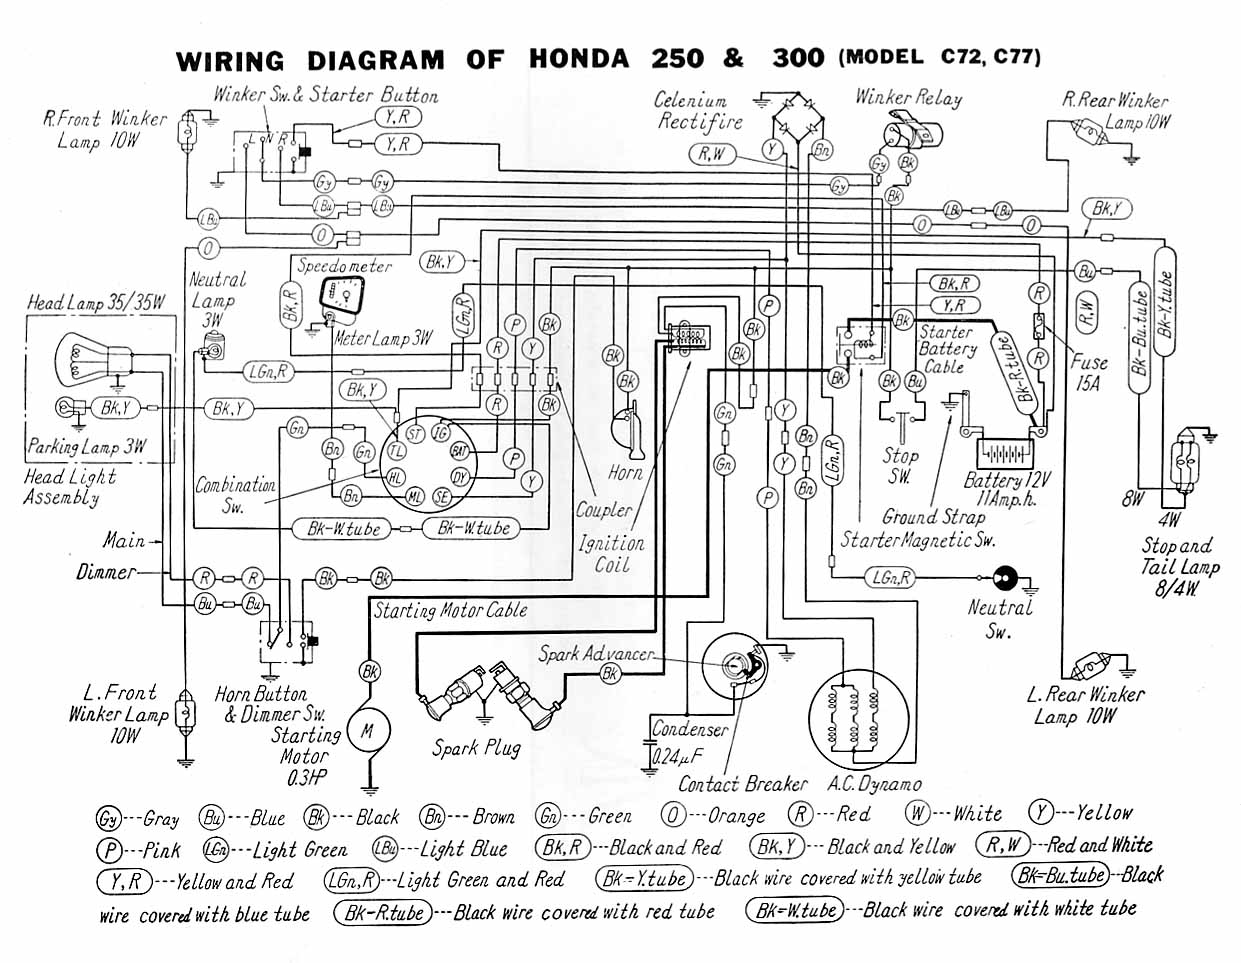 C77 wiring diagrams honda motorcycle wiring diagrams pdf at n-0.co